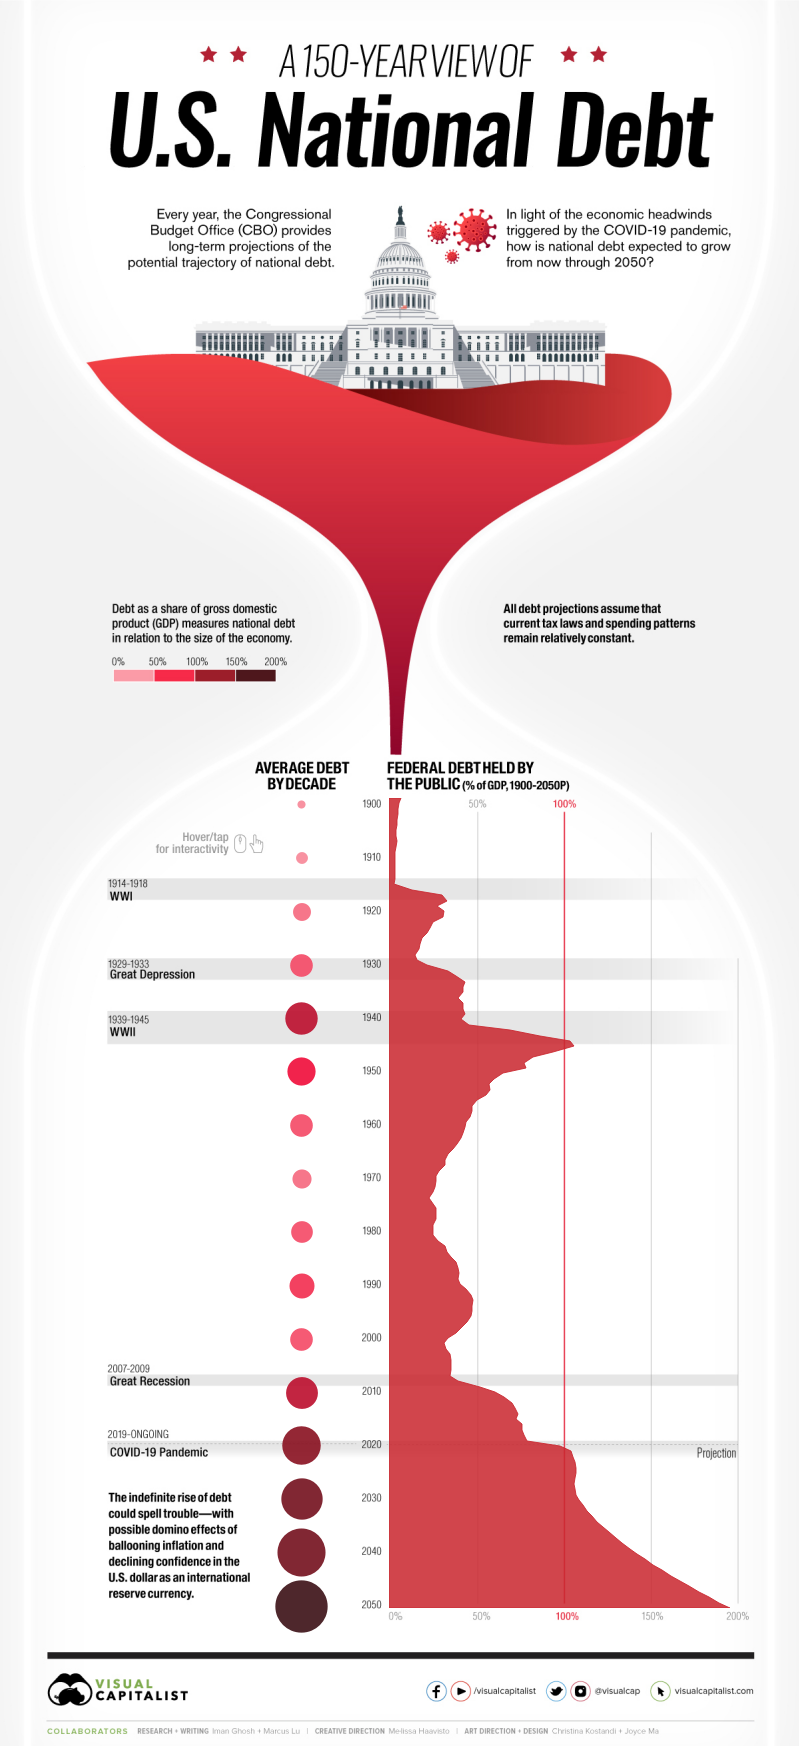 Visual Capitalist: A 150-Year View of U.S. National Debt